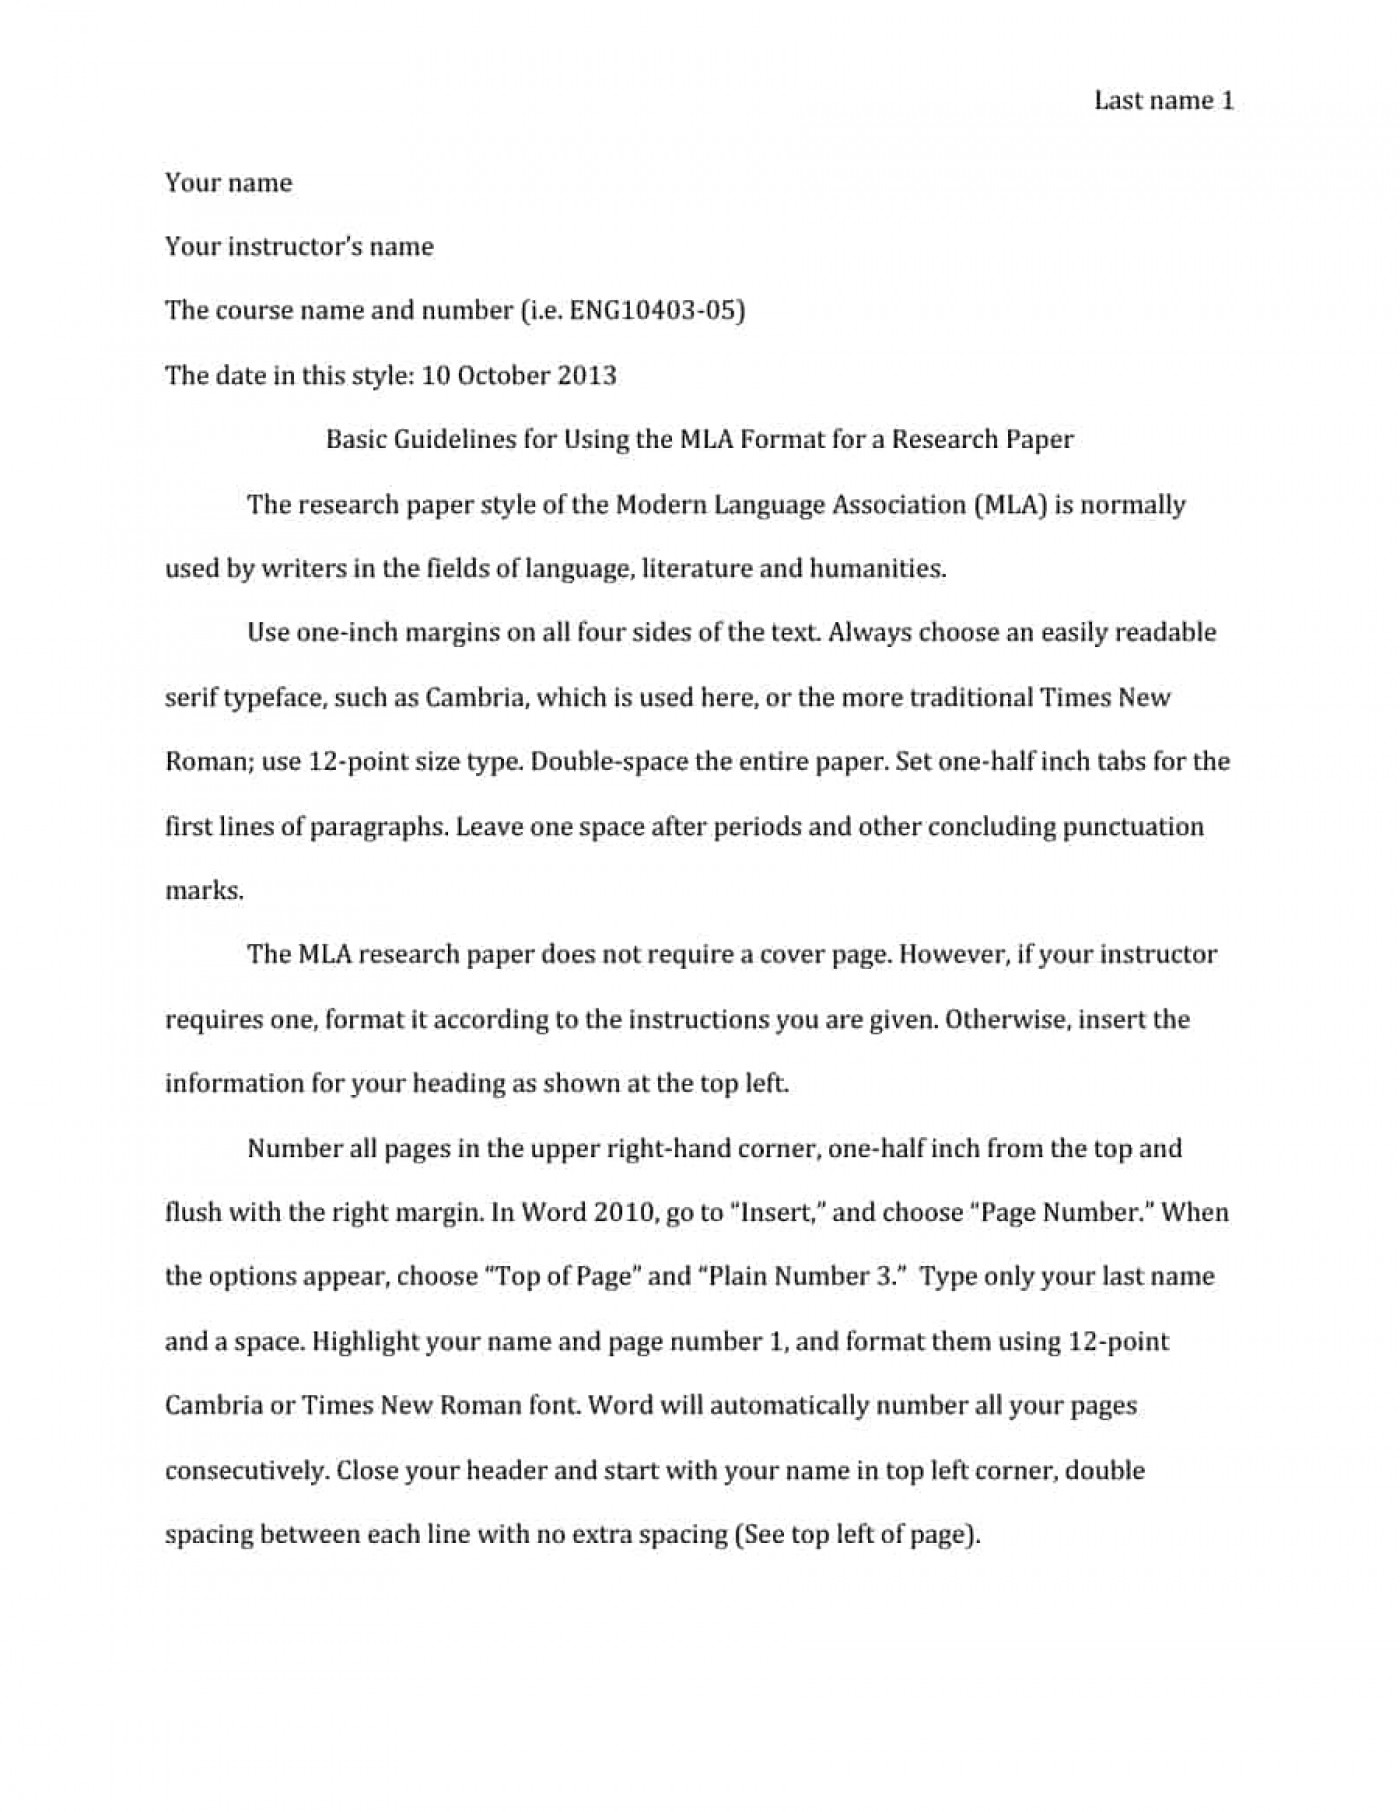 005 Research Paper In Mla Format Template Unbelievable Style Example With Title Page Outline 1400